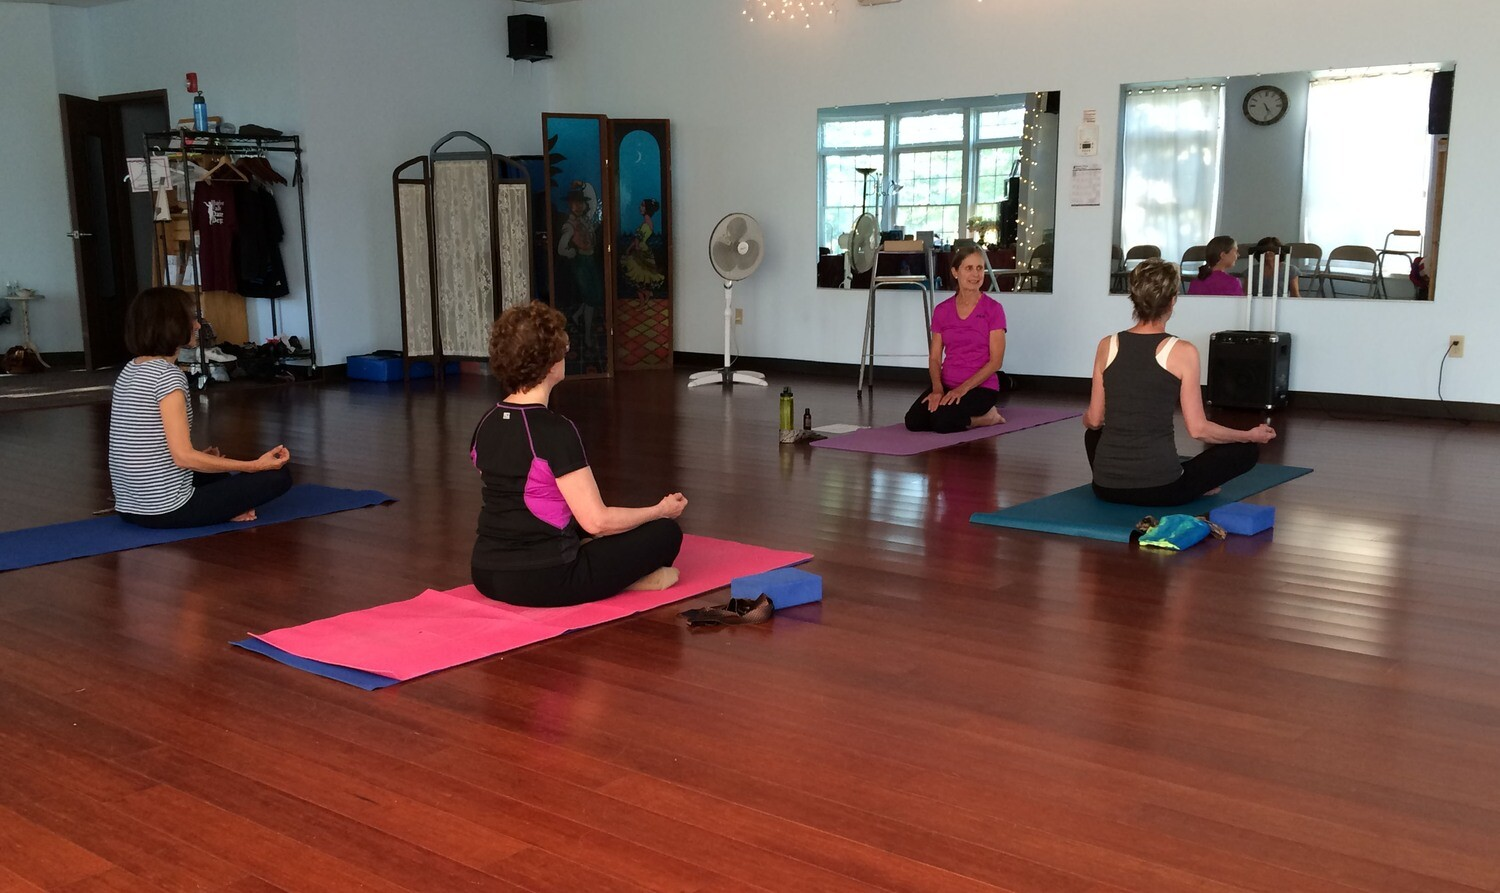 Gentle Yoga with Jan, 6 consecutive weeks, Sundays 5:00 - 6:15, Starting March 22nd